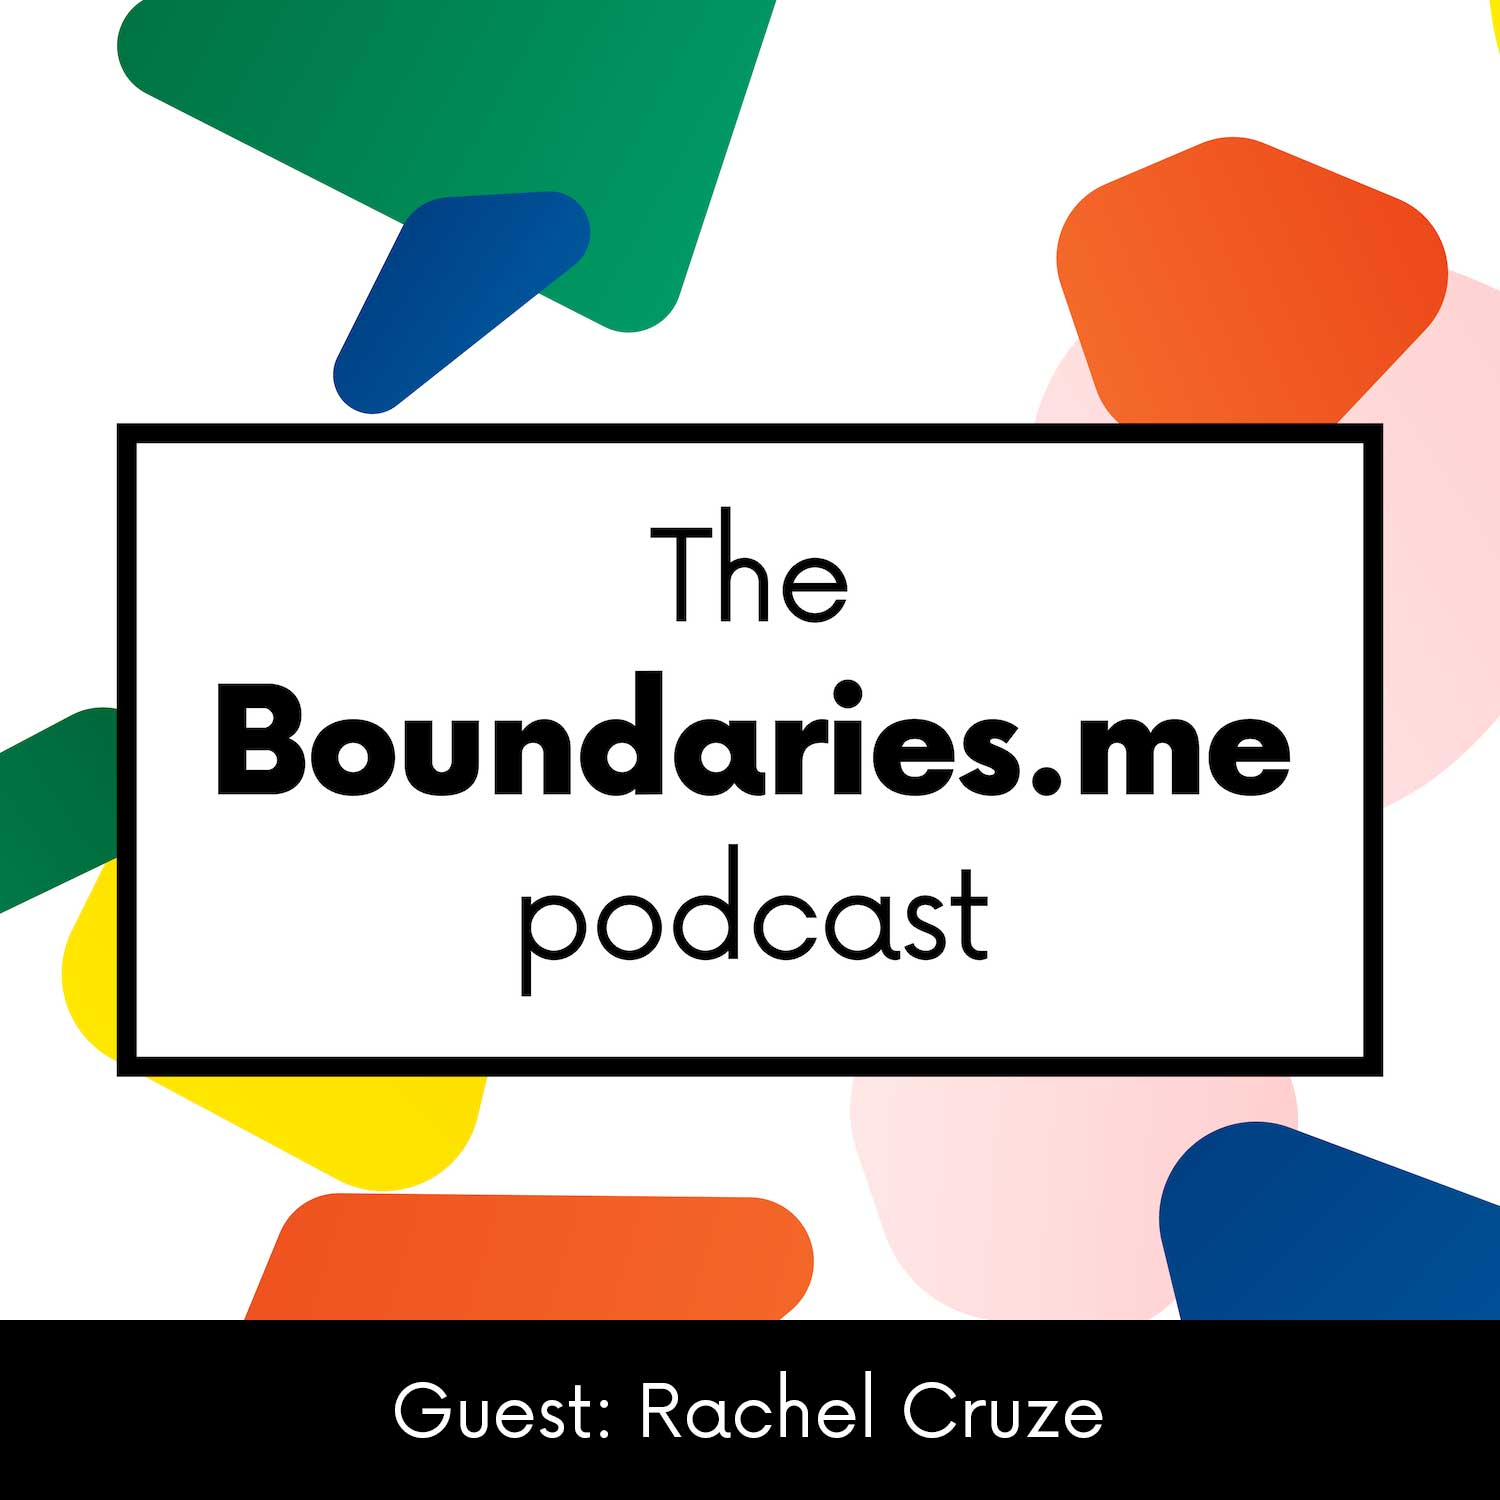 Episode 3 with Rachel Cruze - Stop Comparing Yourself to Others